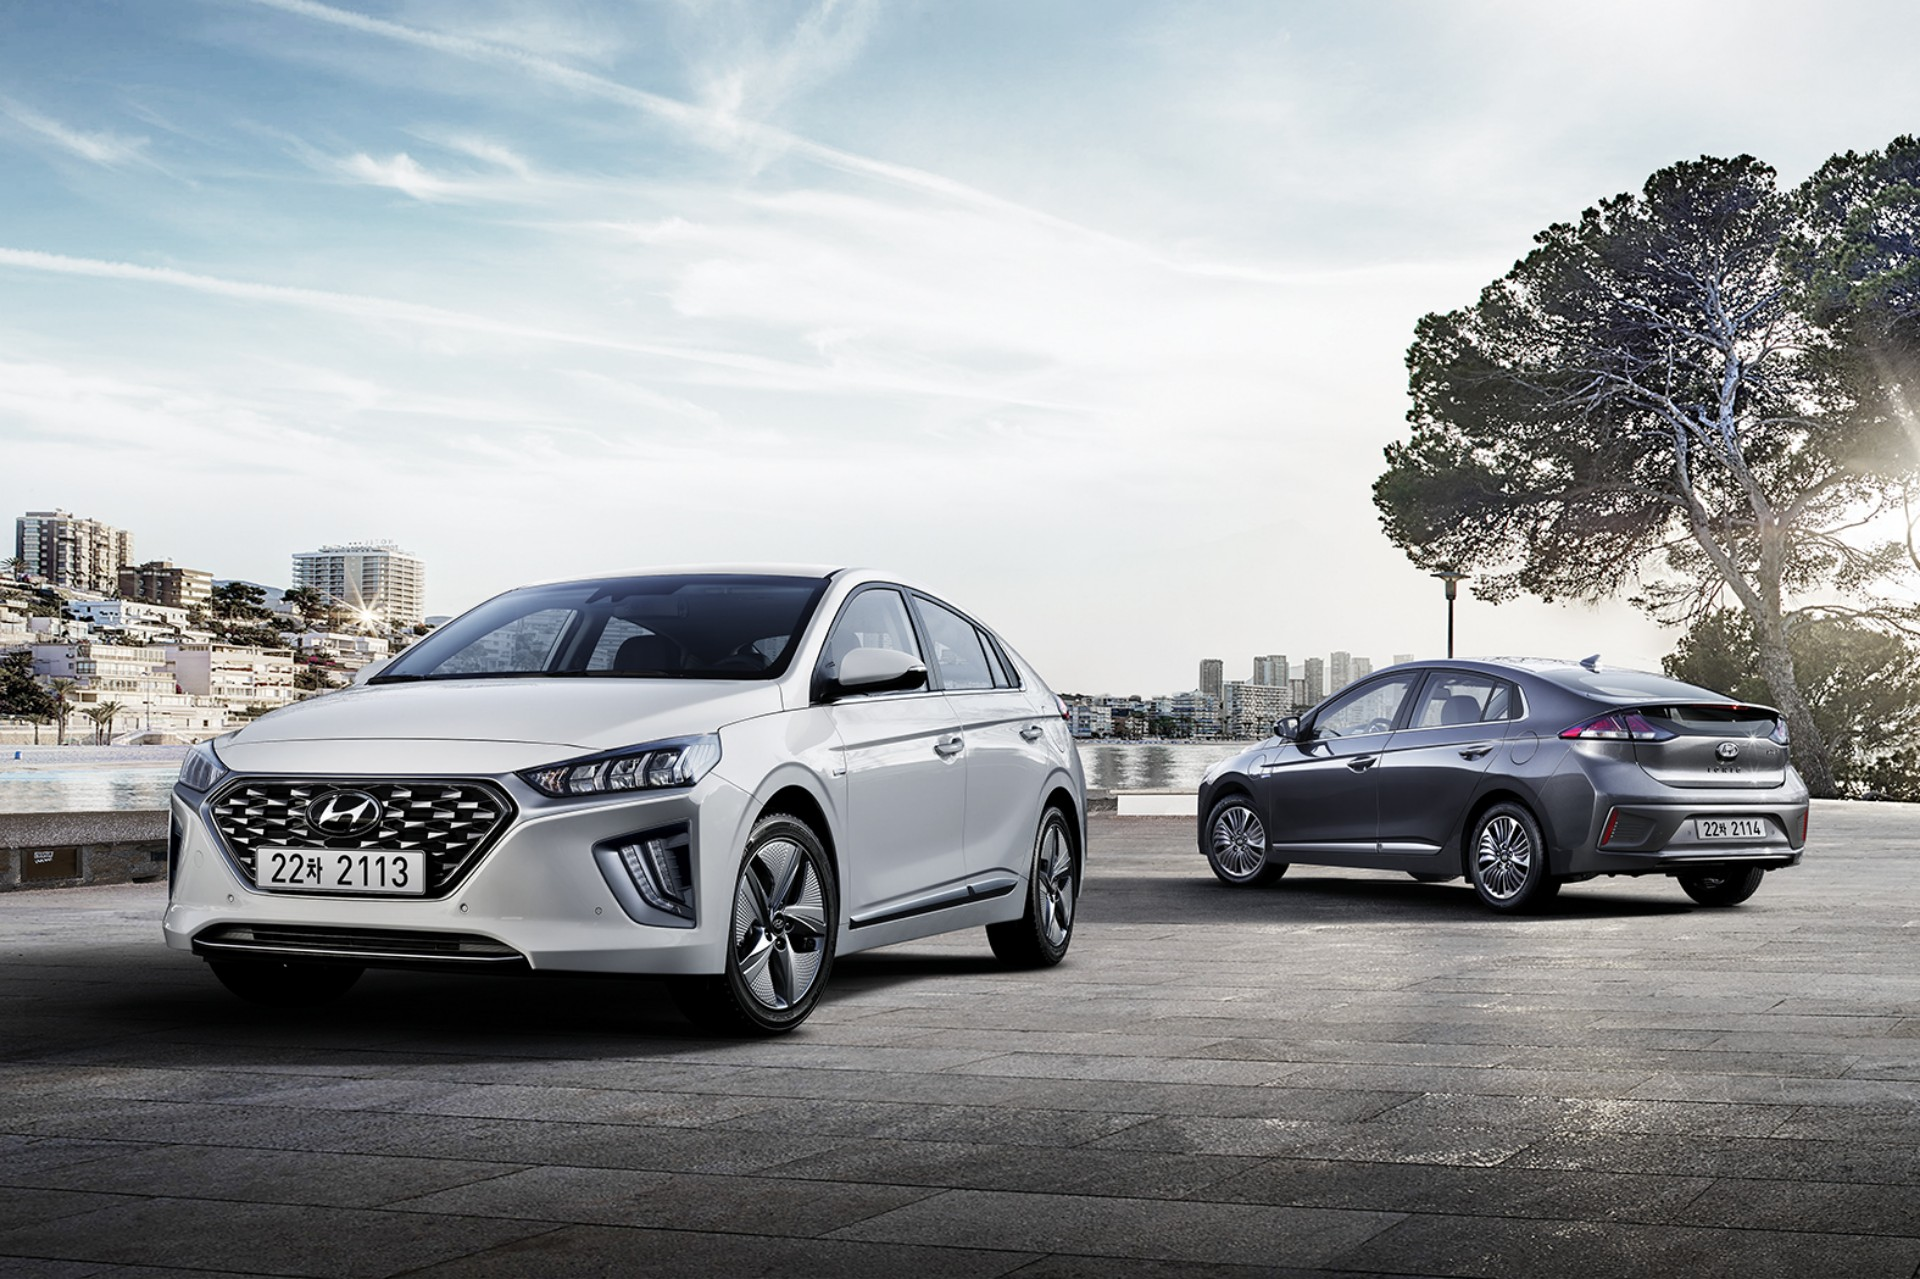 2020 Hyundai Ioniq: First look at refreshed interior, new features